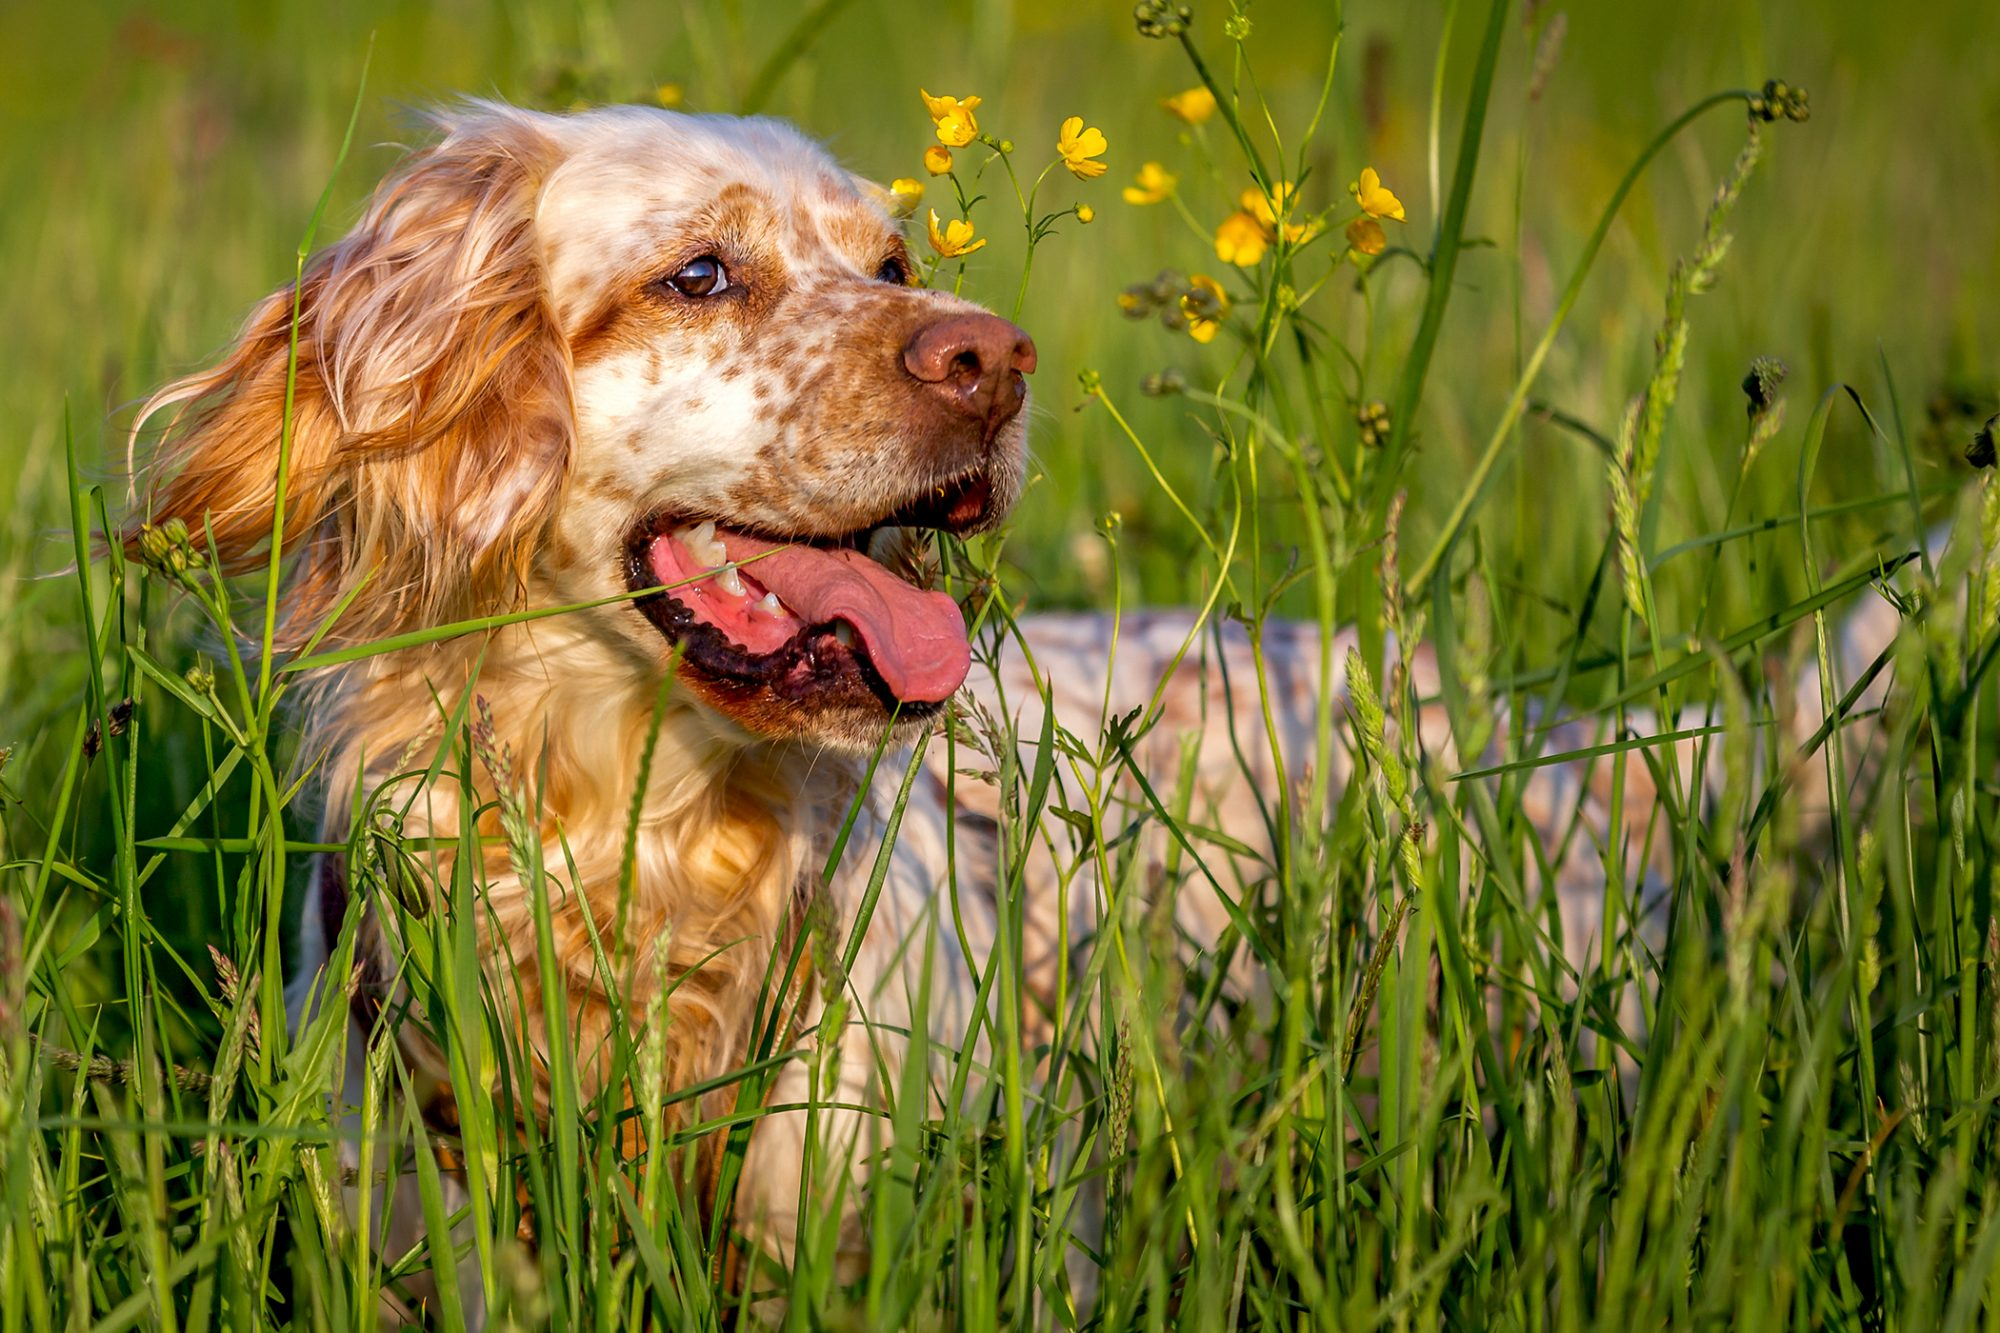 Strawberry blonde spotted English Setter lays in long grass on sunny day